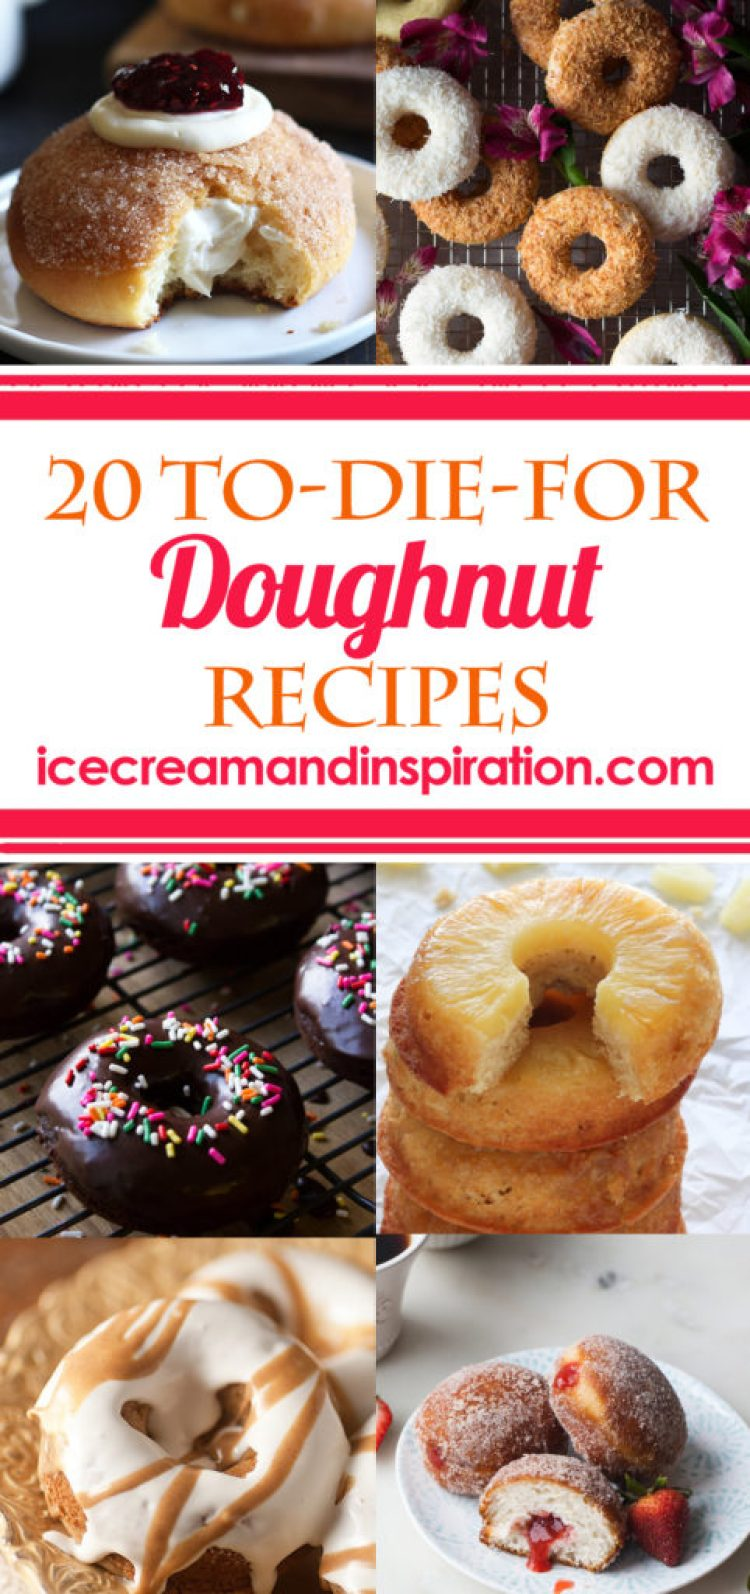 The ever popular doughnut. Is it a breakfast food? Is it a dessert? Who cares! Whether they are fried or baked, filled or frosted, doughnuts have captured the hearts (and stomachs) of Americans for years. Check out this list of 20 homemade doughnut recipes. Some are classic, and some are unusual, but all are delicious!